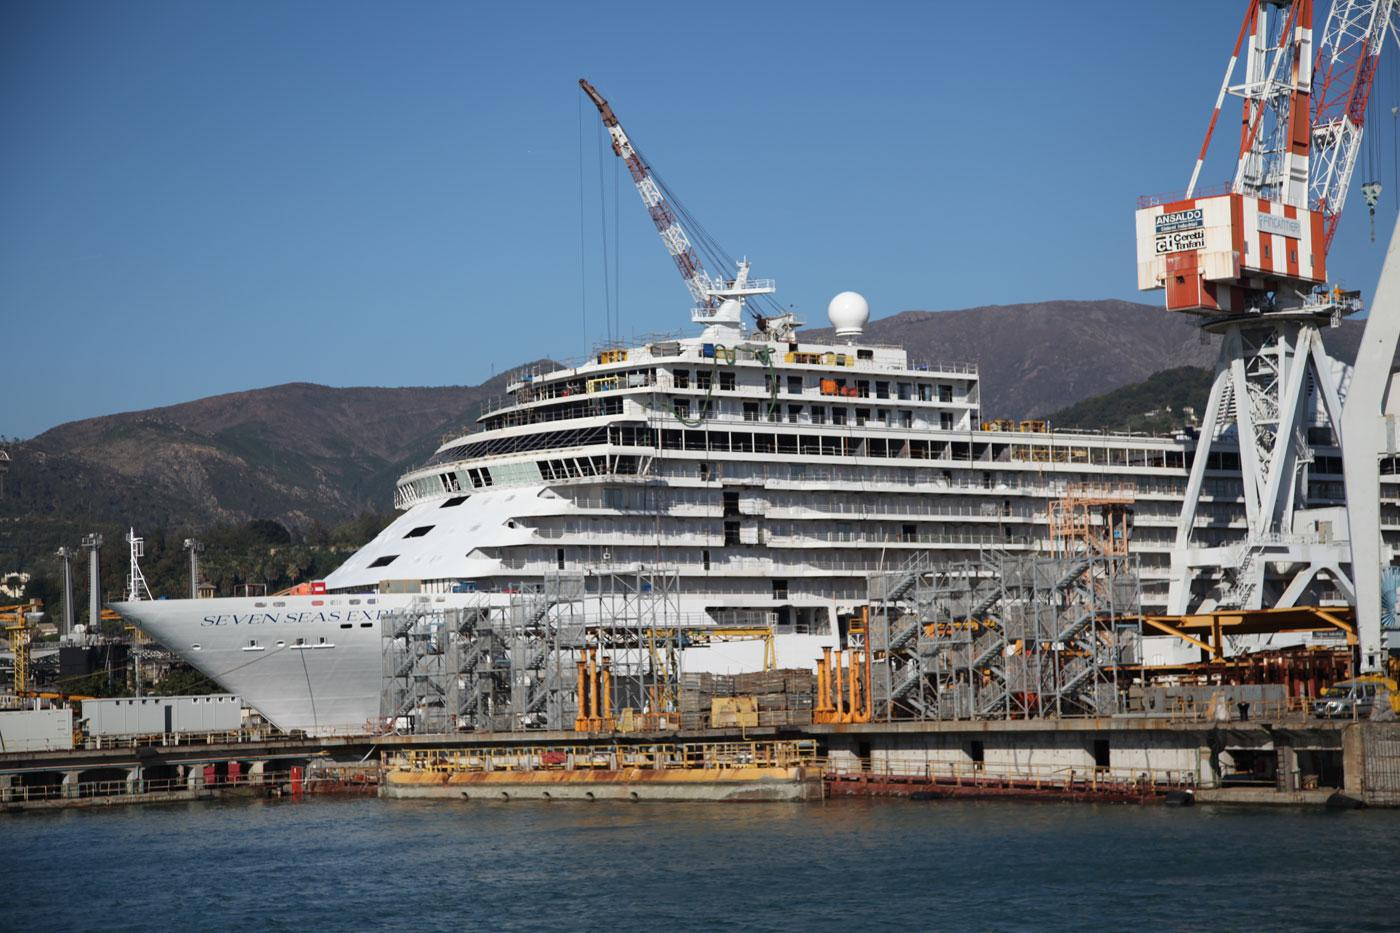 the extravagant features of a luxury cruise ship wttw chicago